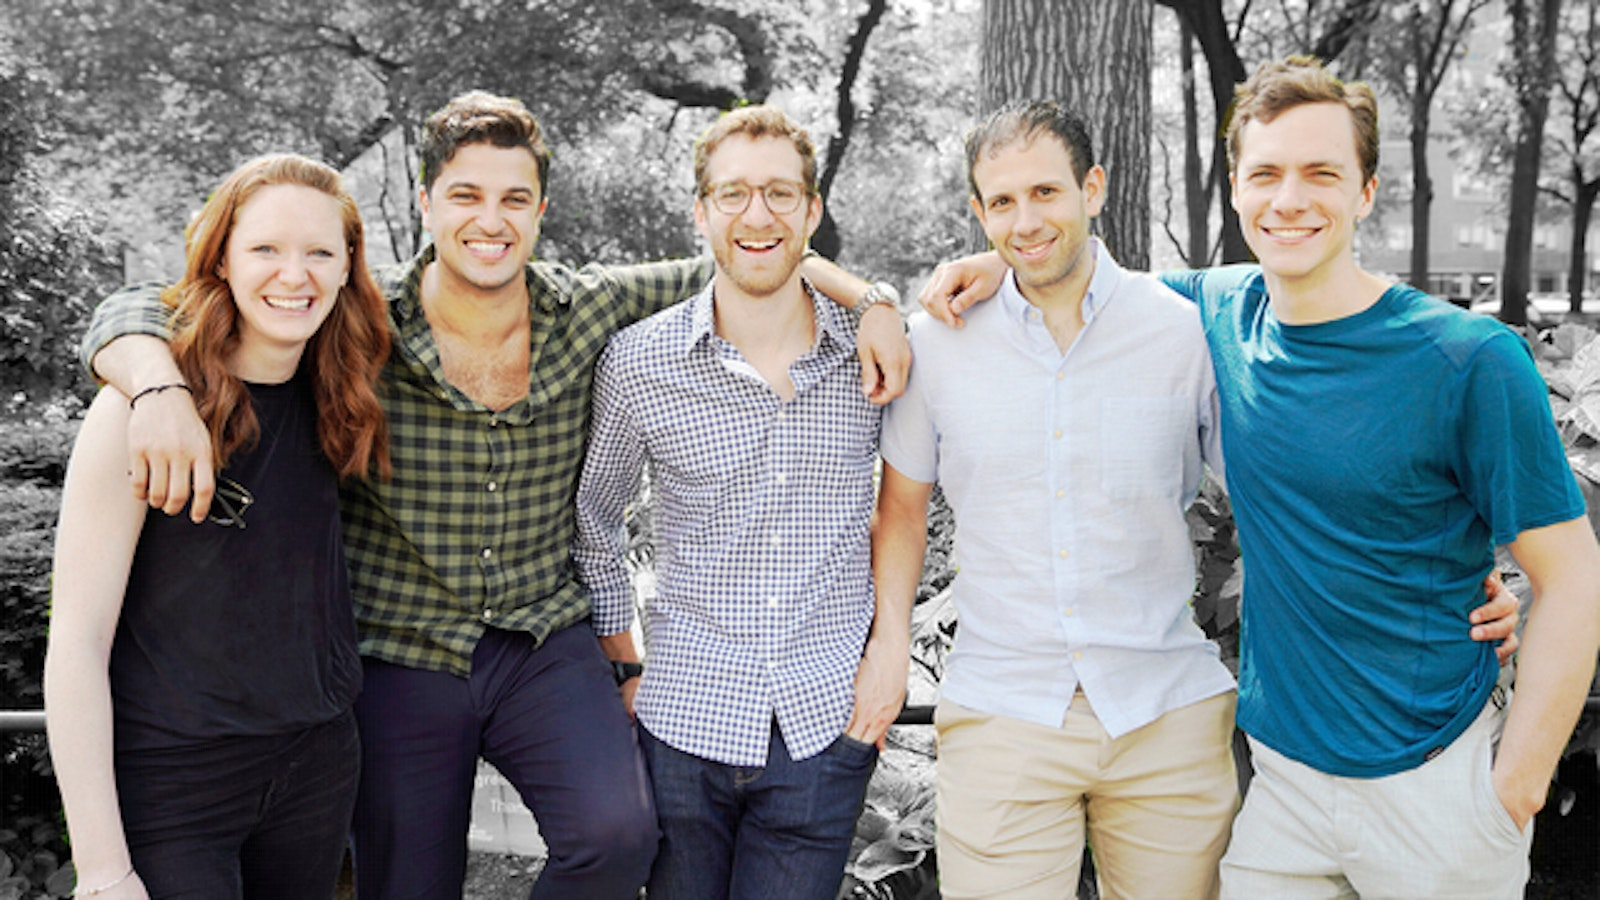 Candid founders Lilla Cosgrove, Bobby Ghoshal; Sam Levine, Nick Greenfield and Spencer Salovaara. Photo: Candid